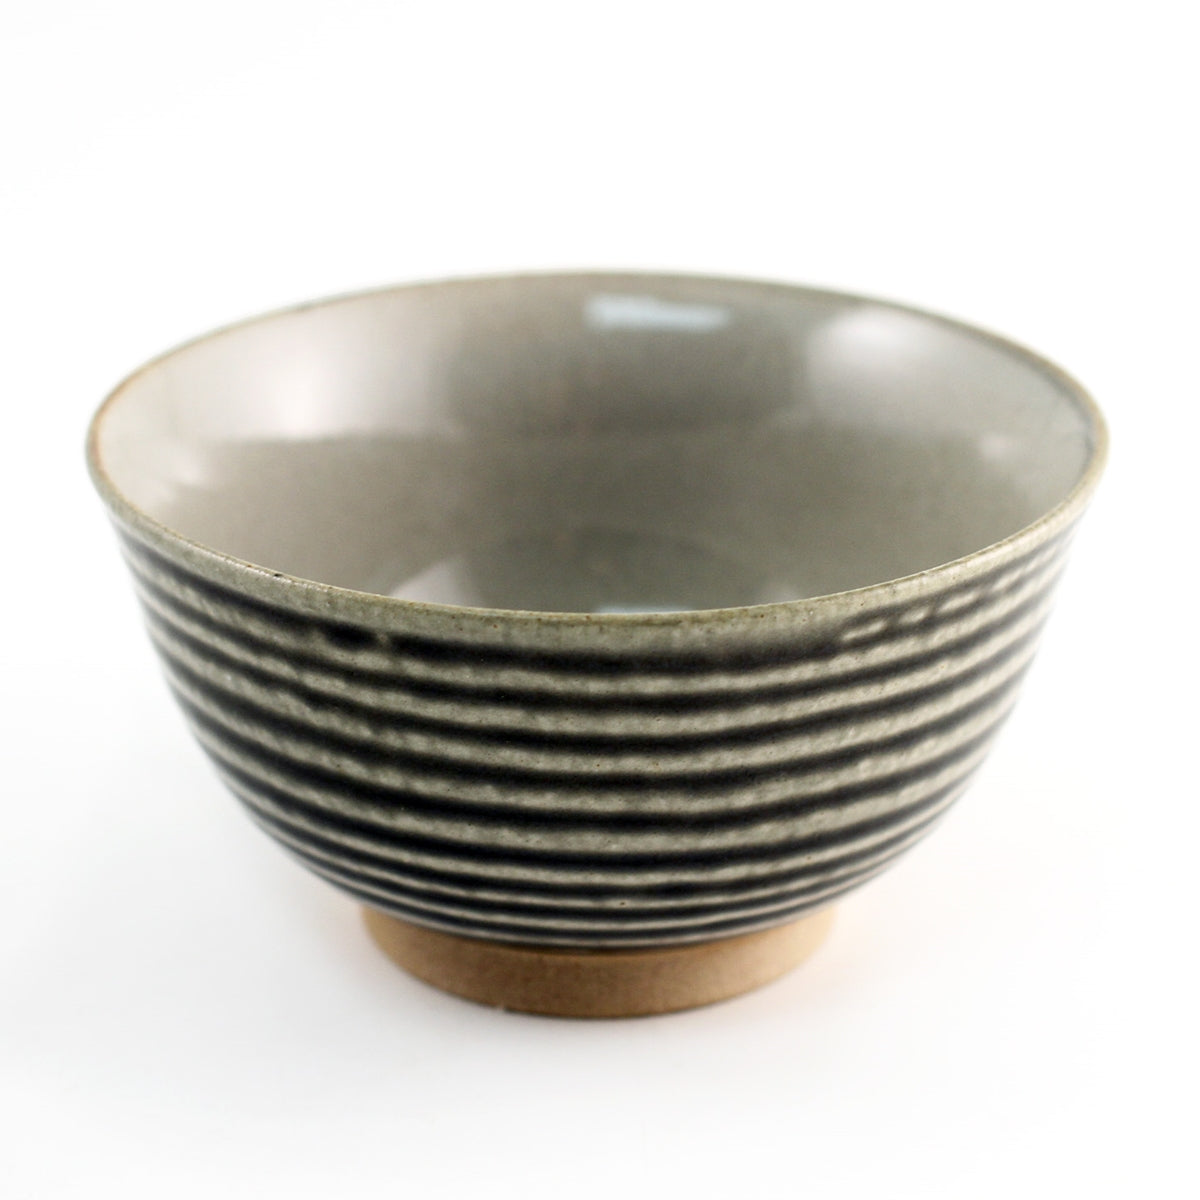 "Striped Rice Bowl 8 fl oz / 4.57"" dia"